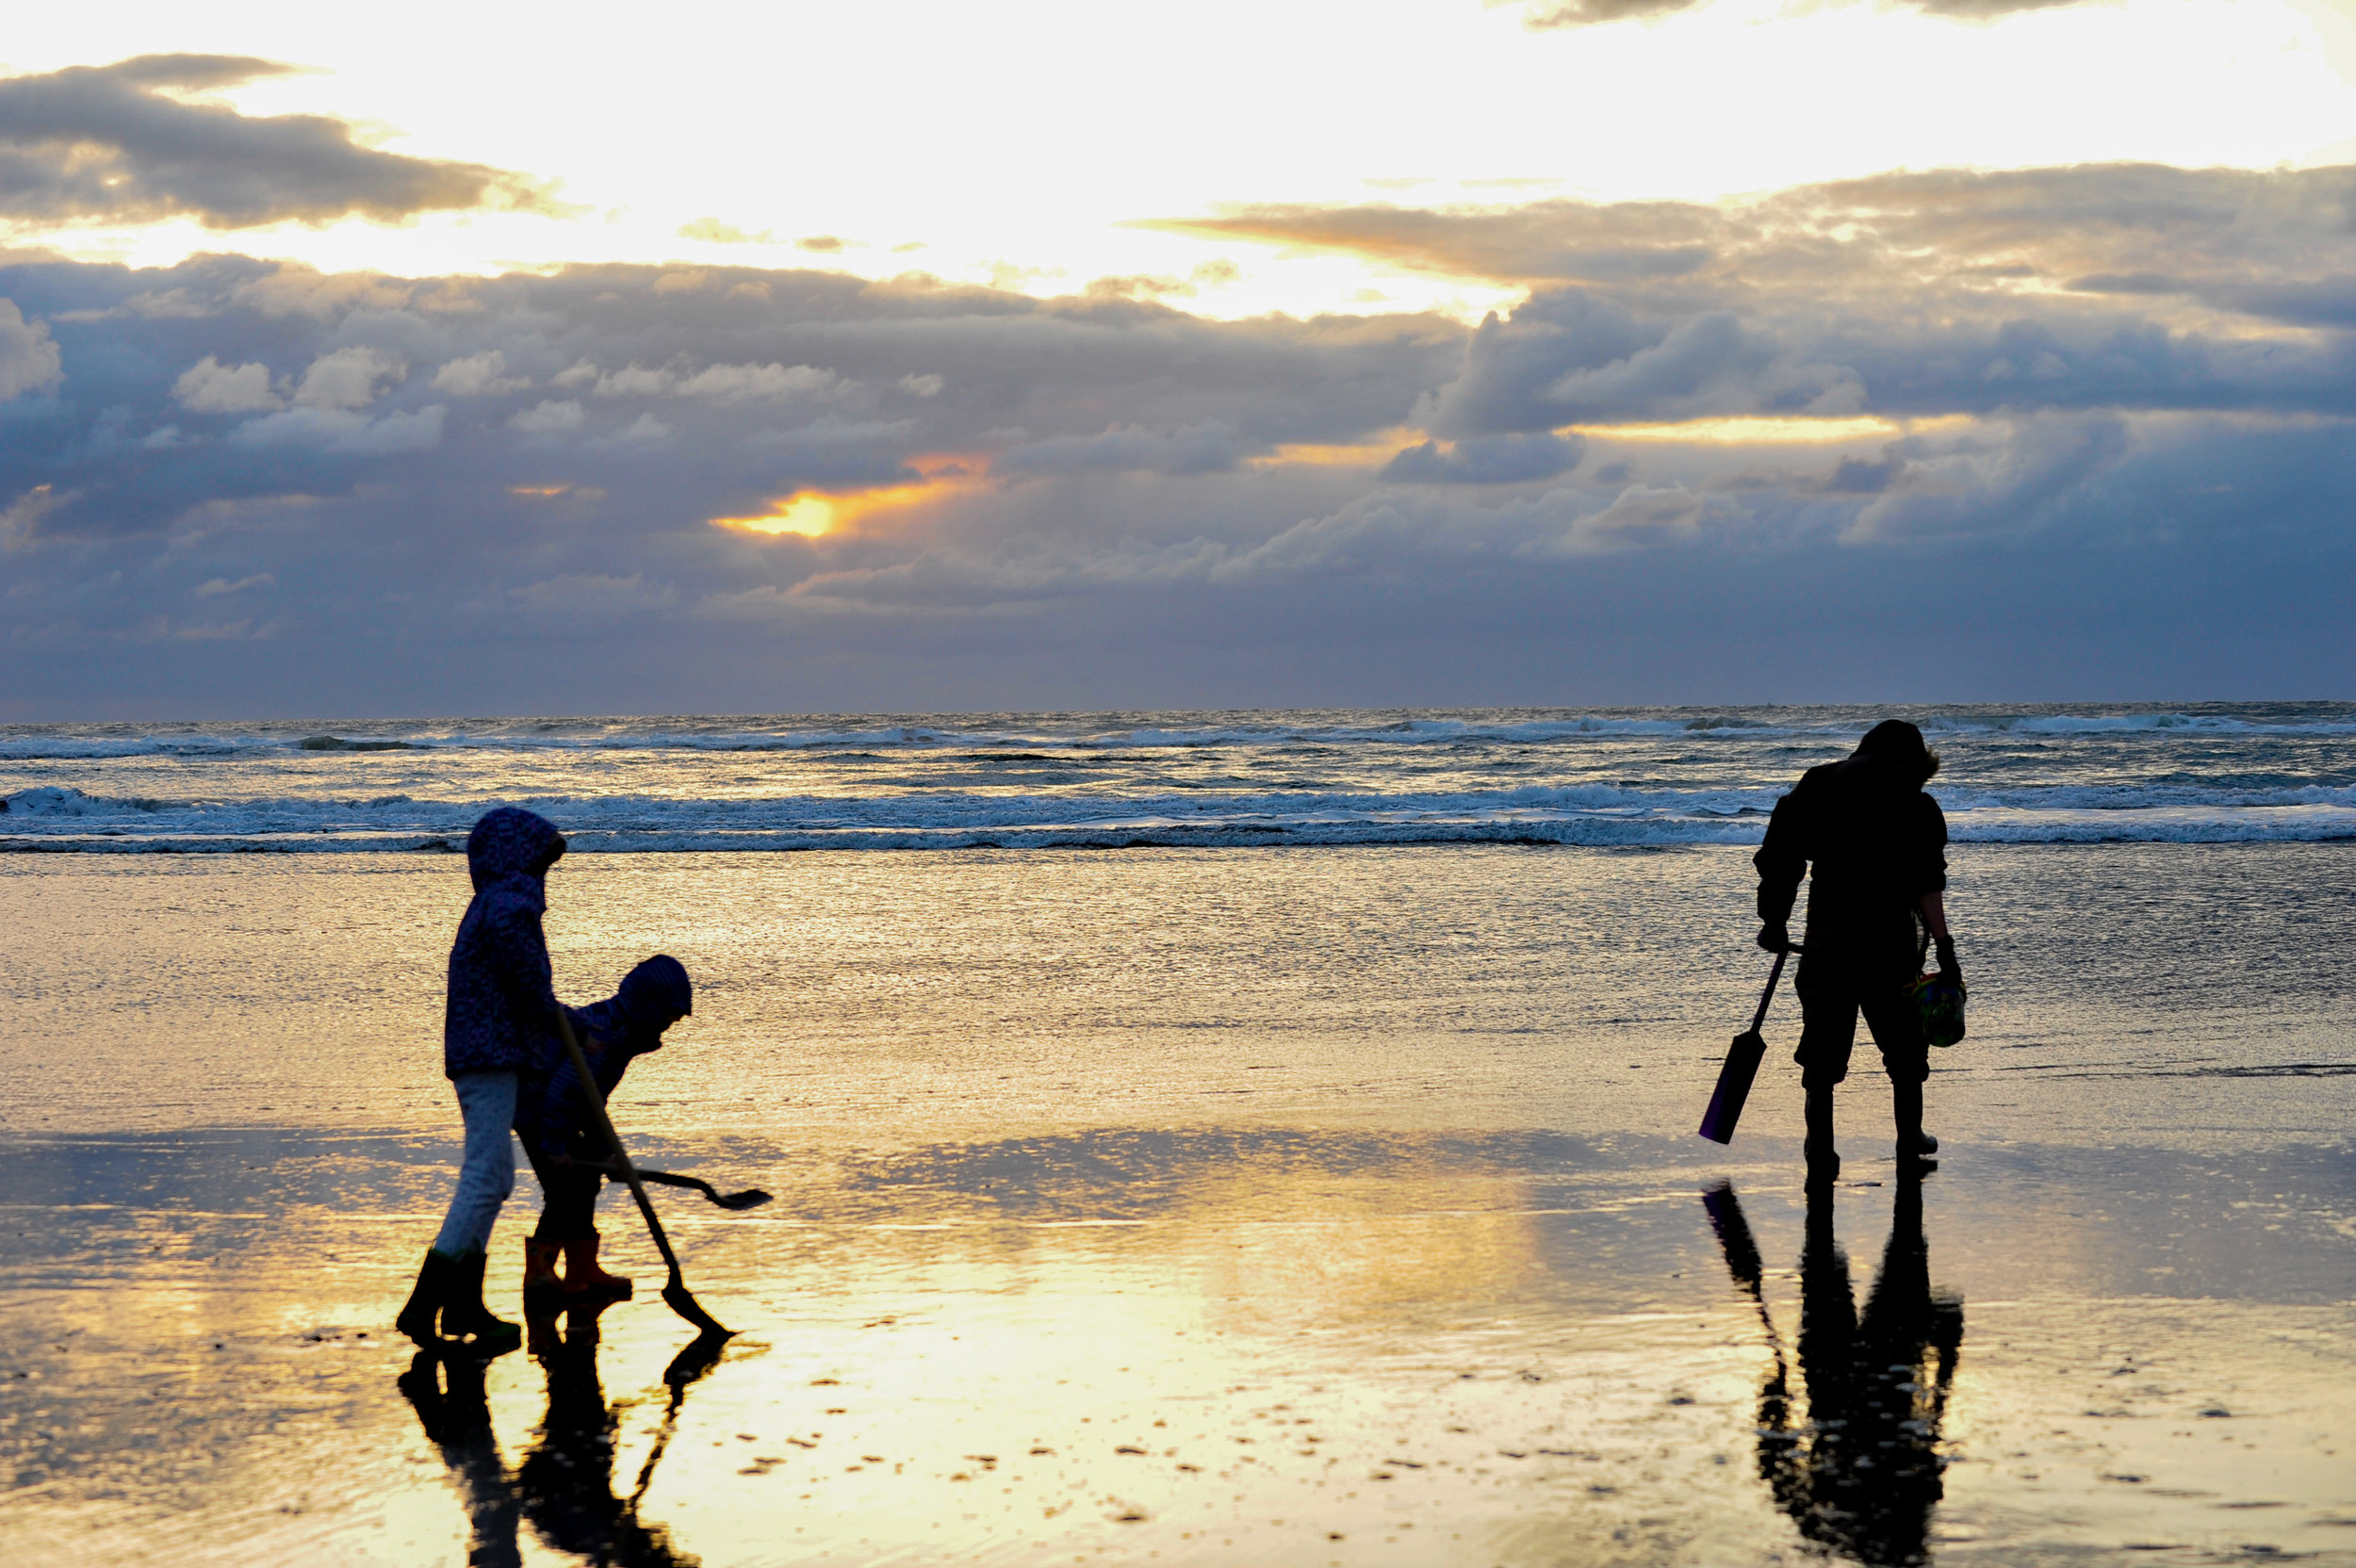 #11 Razor Clamming - If you haven't been clamming yet, You're missing out. Bonus points for making homemade clam chowder!